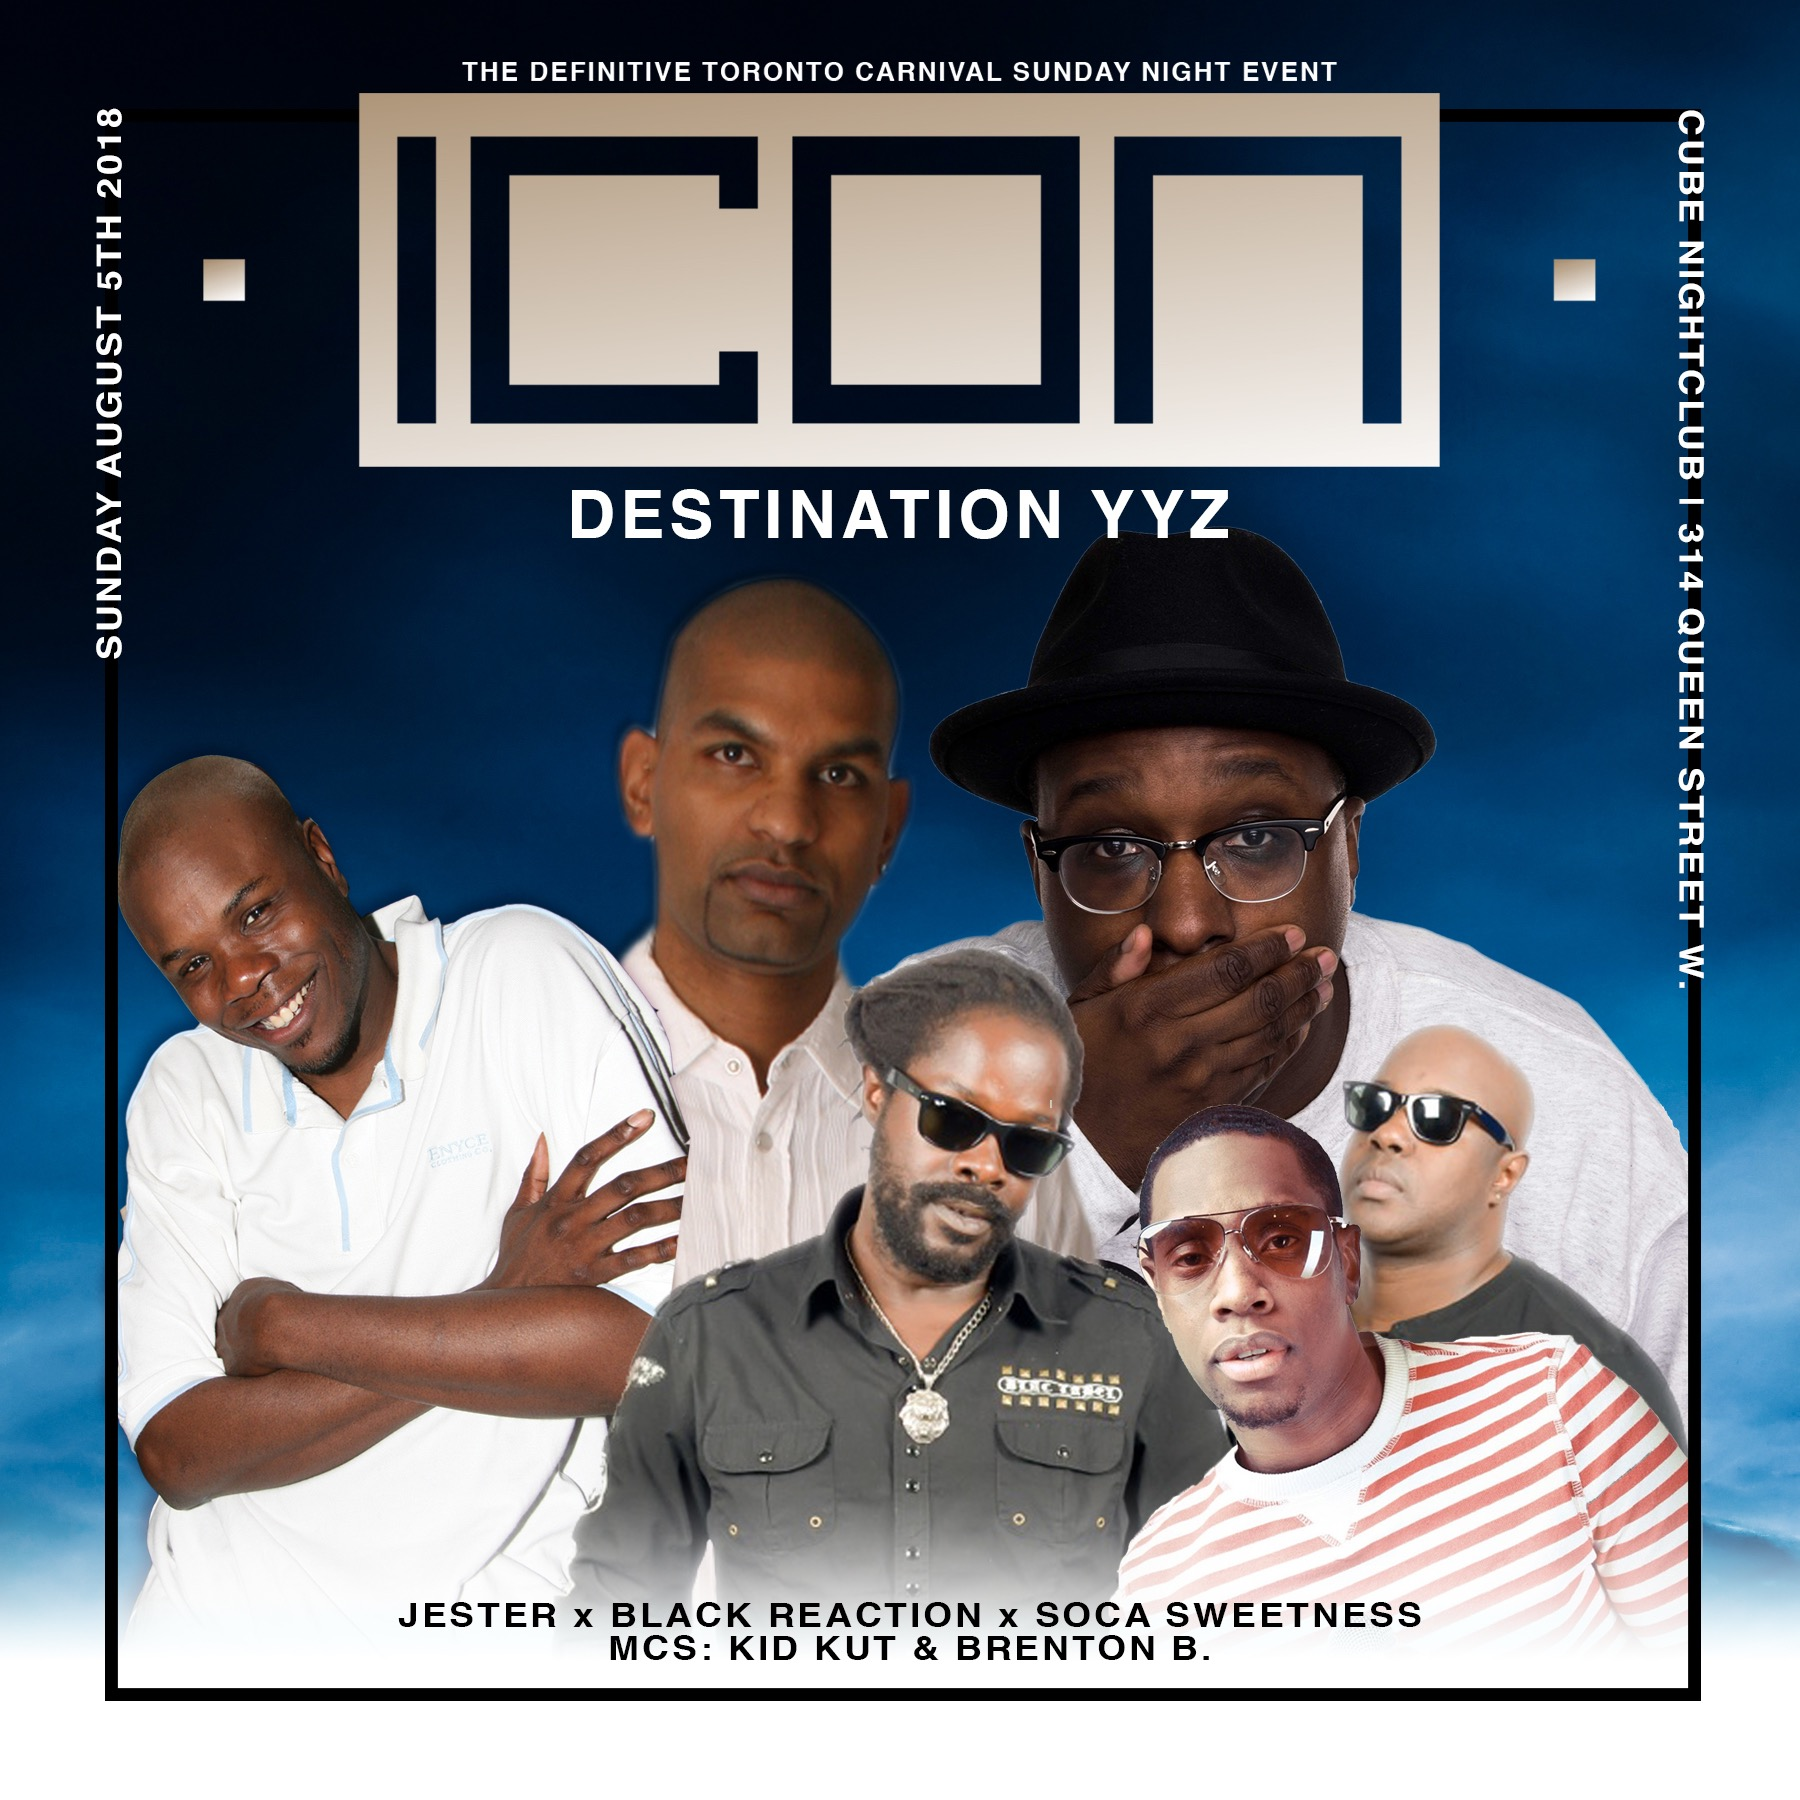 ICON: Destination YYZ - Carnival Sunday August 5th 2018